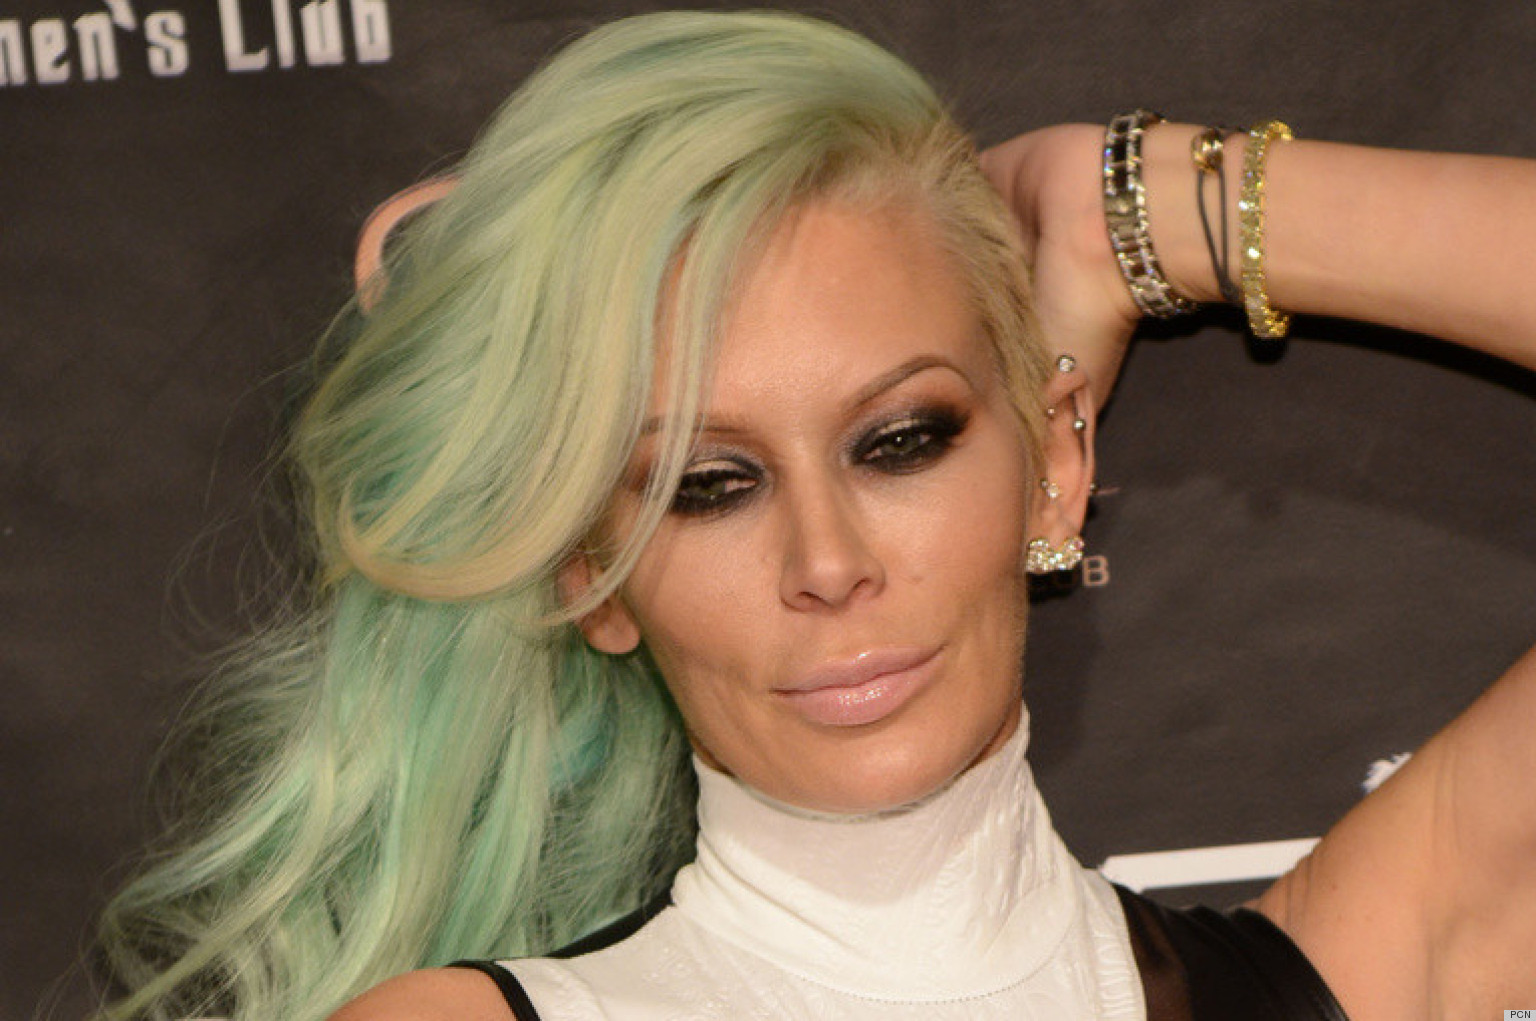 <b>Jenna Jameson's</b> Jumpsuit Is A Sight To Behold (PHOTOS) | The Huffington Post - o-JENNA-JAMESON-JUMPSUIT-facebook